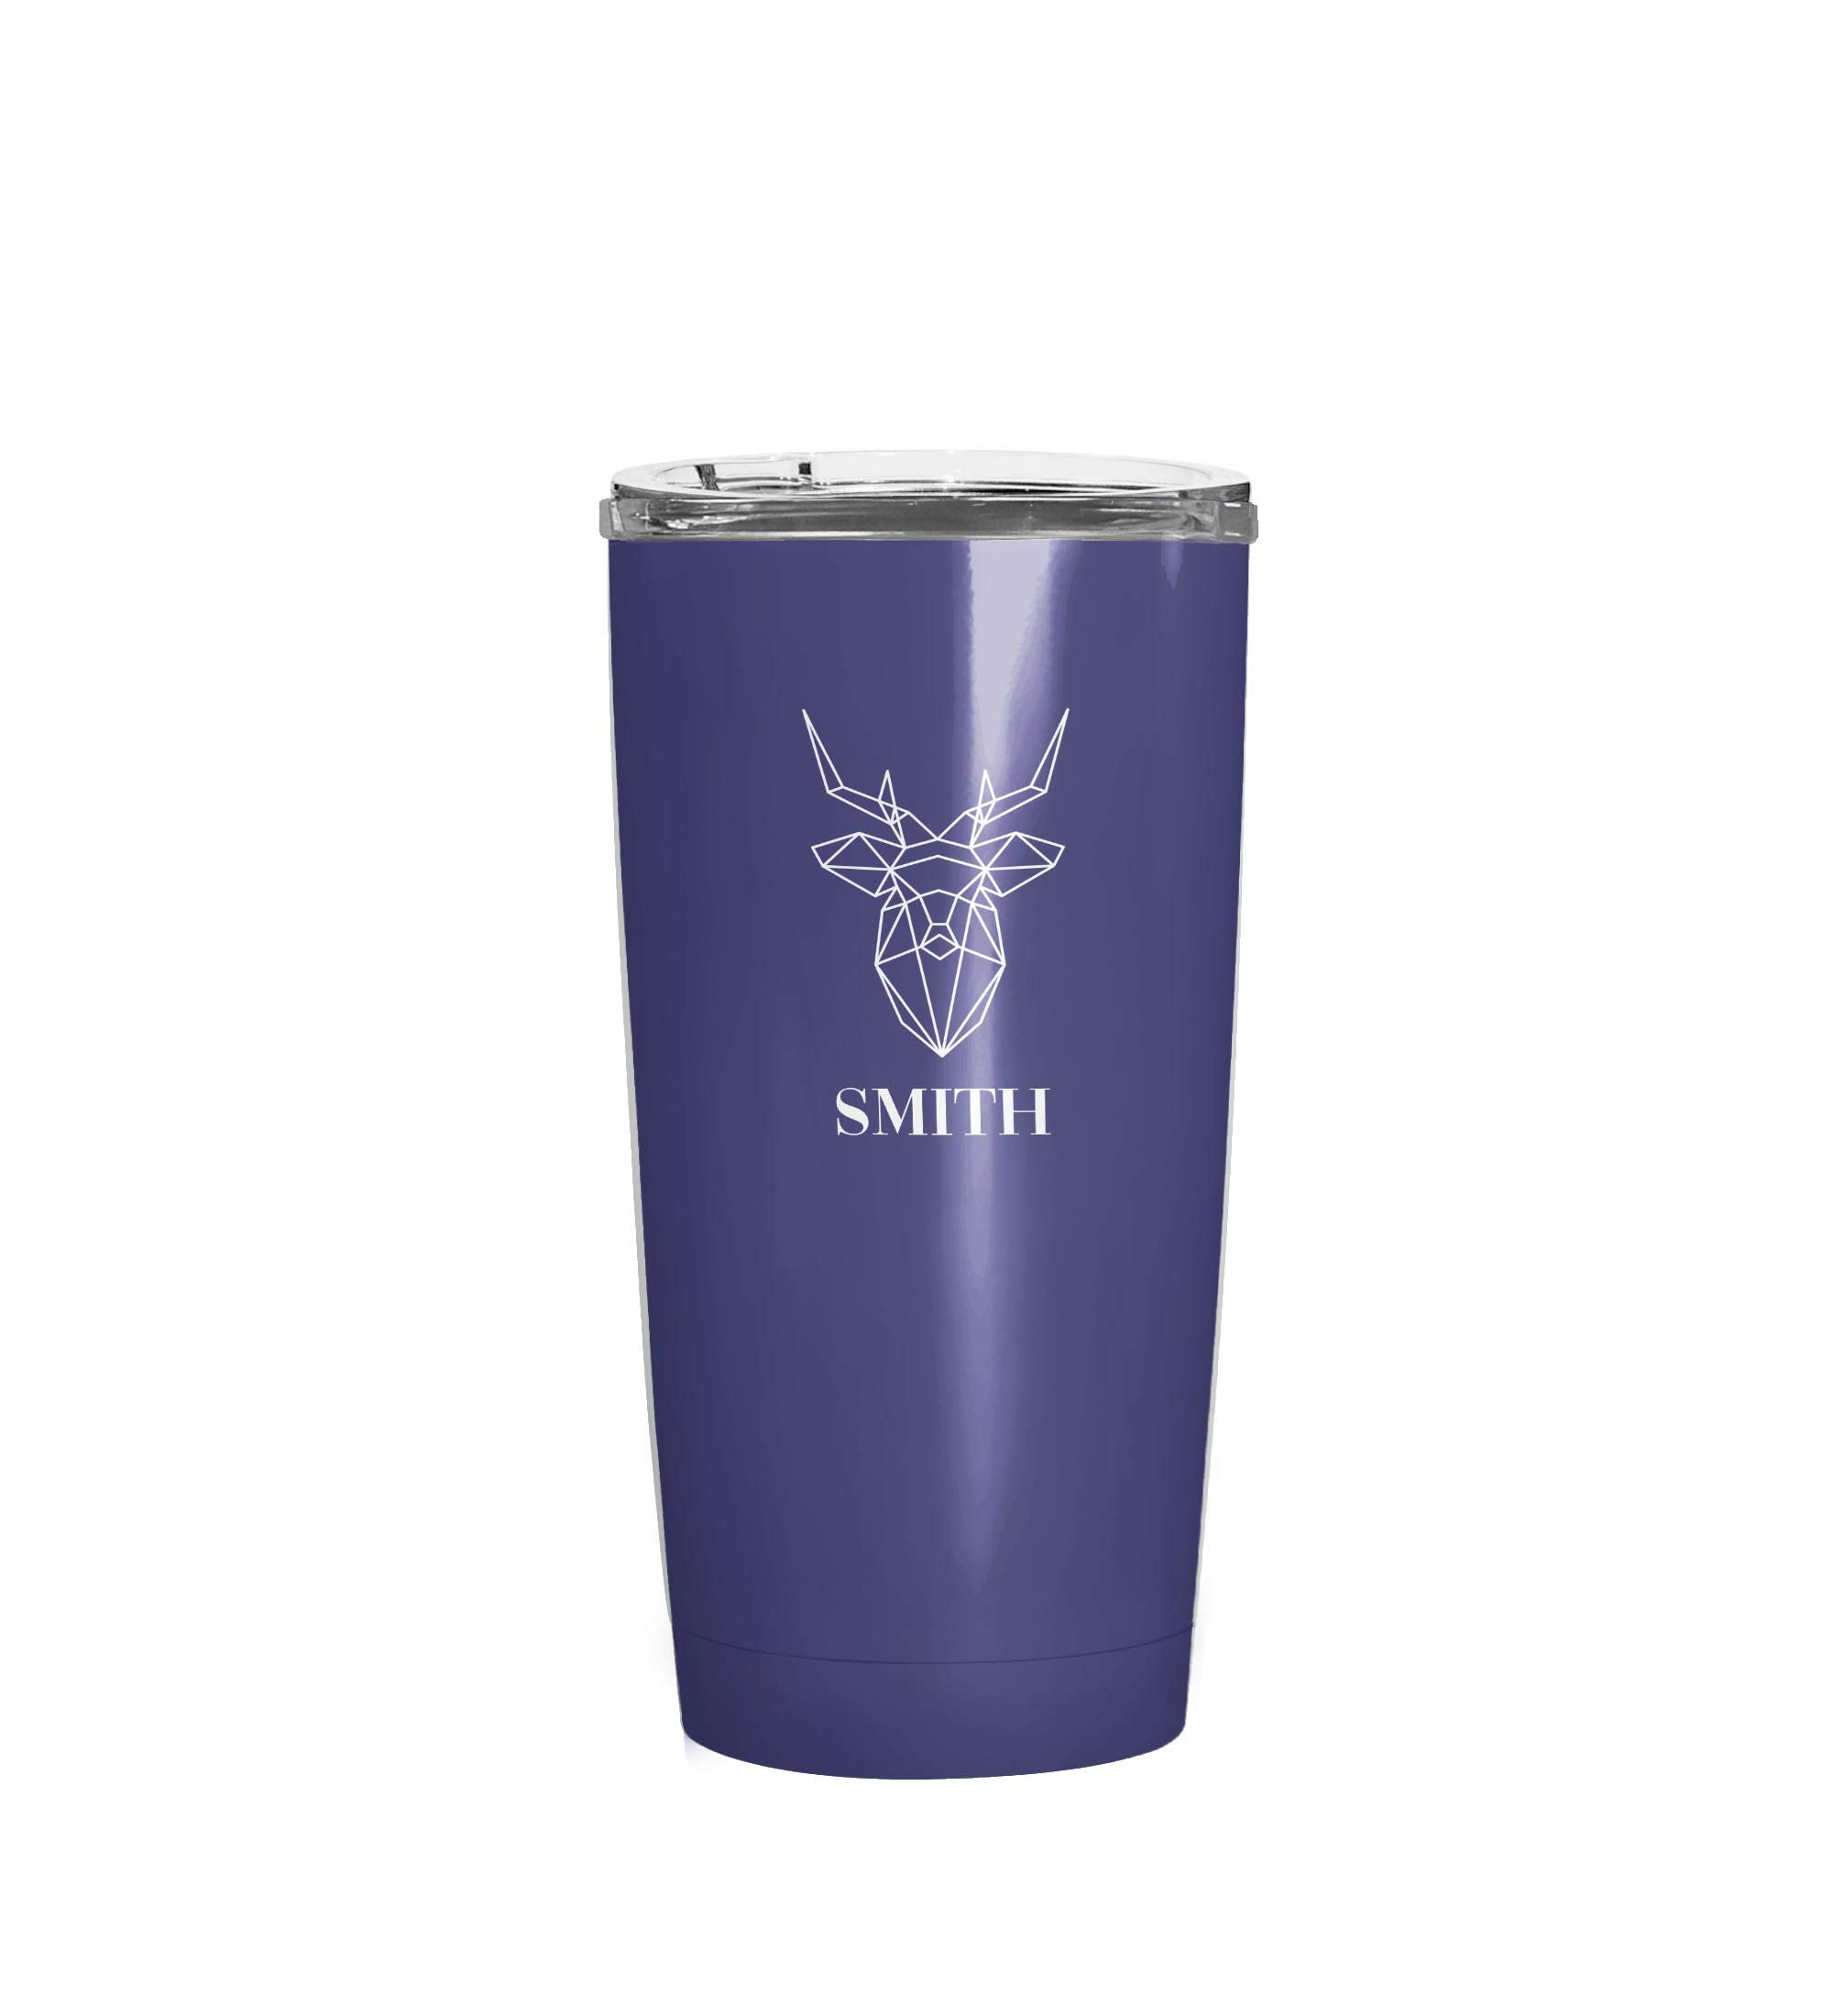 Animal Logo Personalized Stainless Steel Heavy Duty Extra Durable Double Walled Insulated Travel Coffee Tumbler Thermo Mug For Men with Crystal Clear Vacuum Sealed Lid (20oz Tumbler)